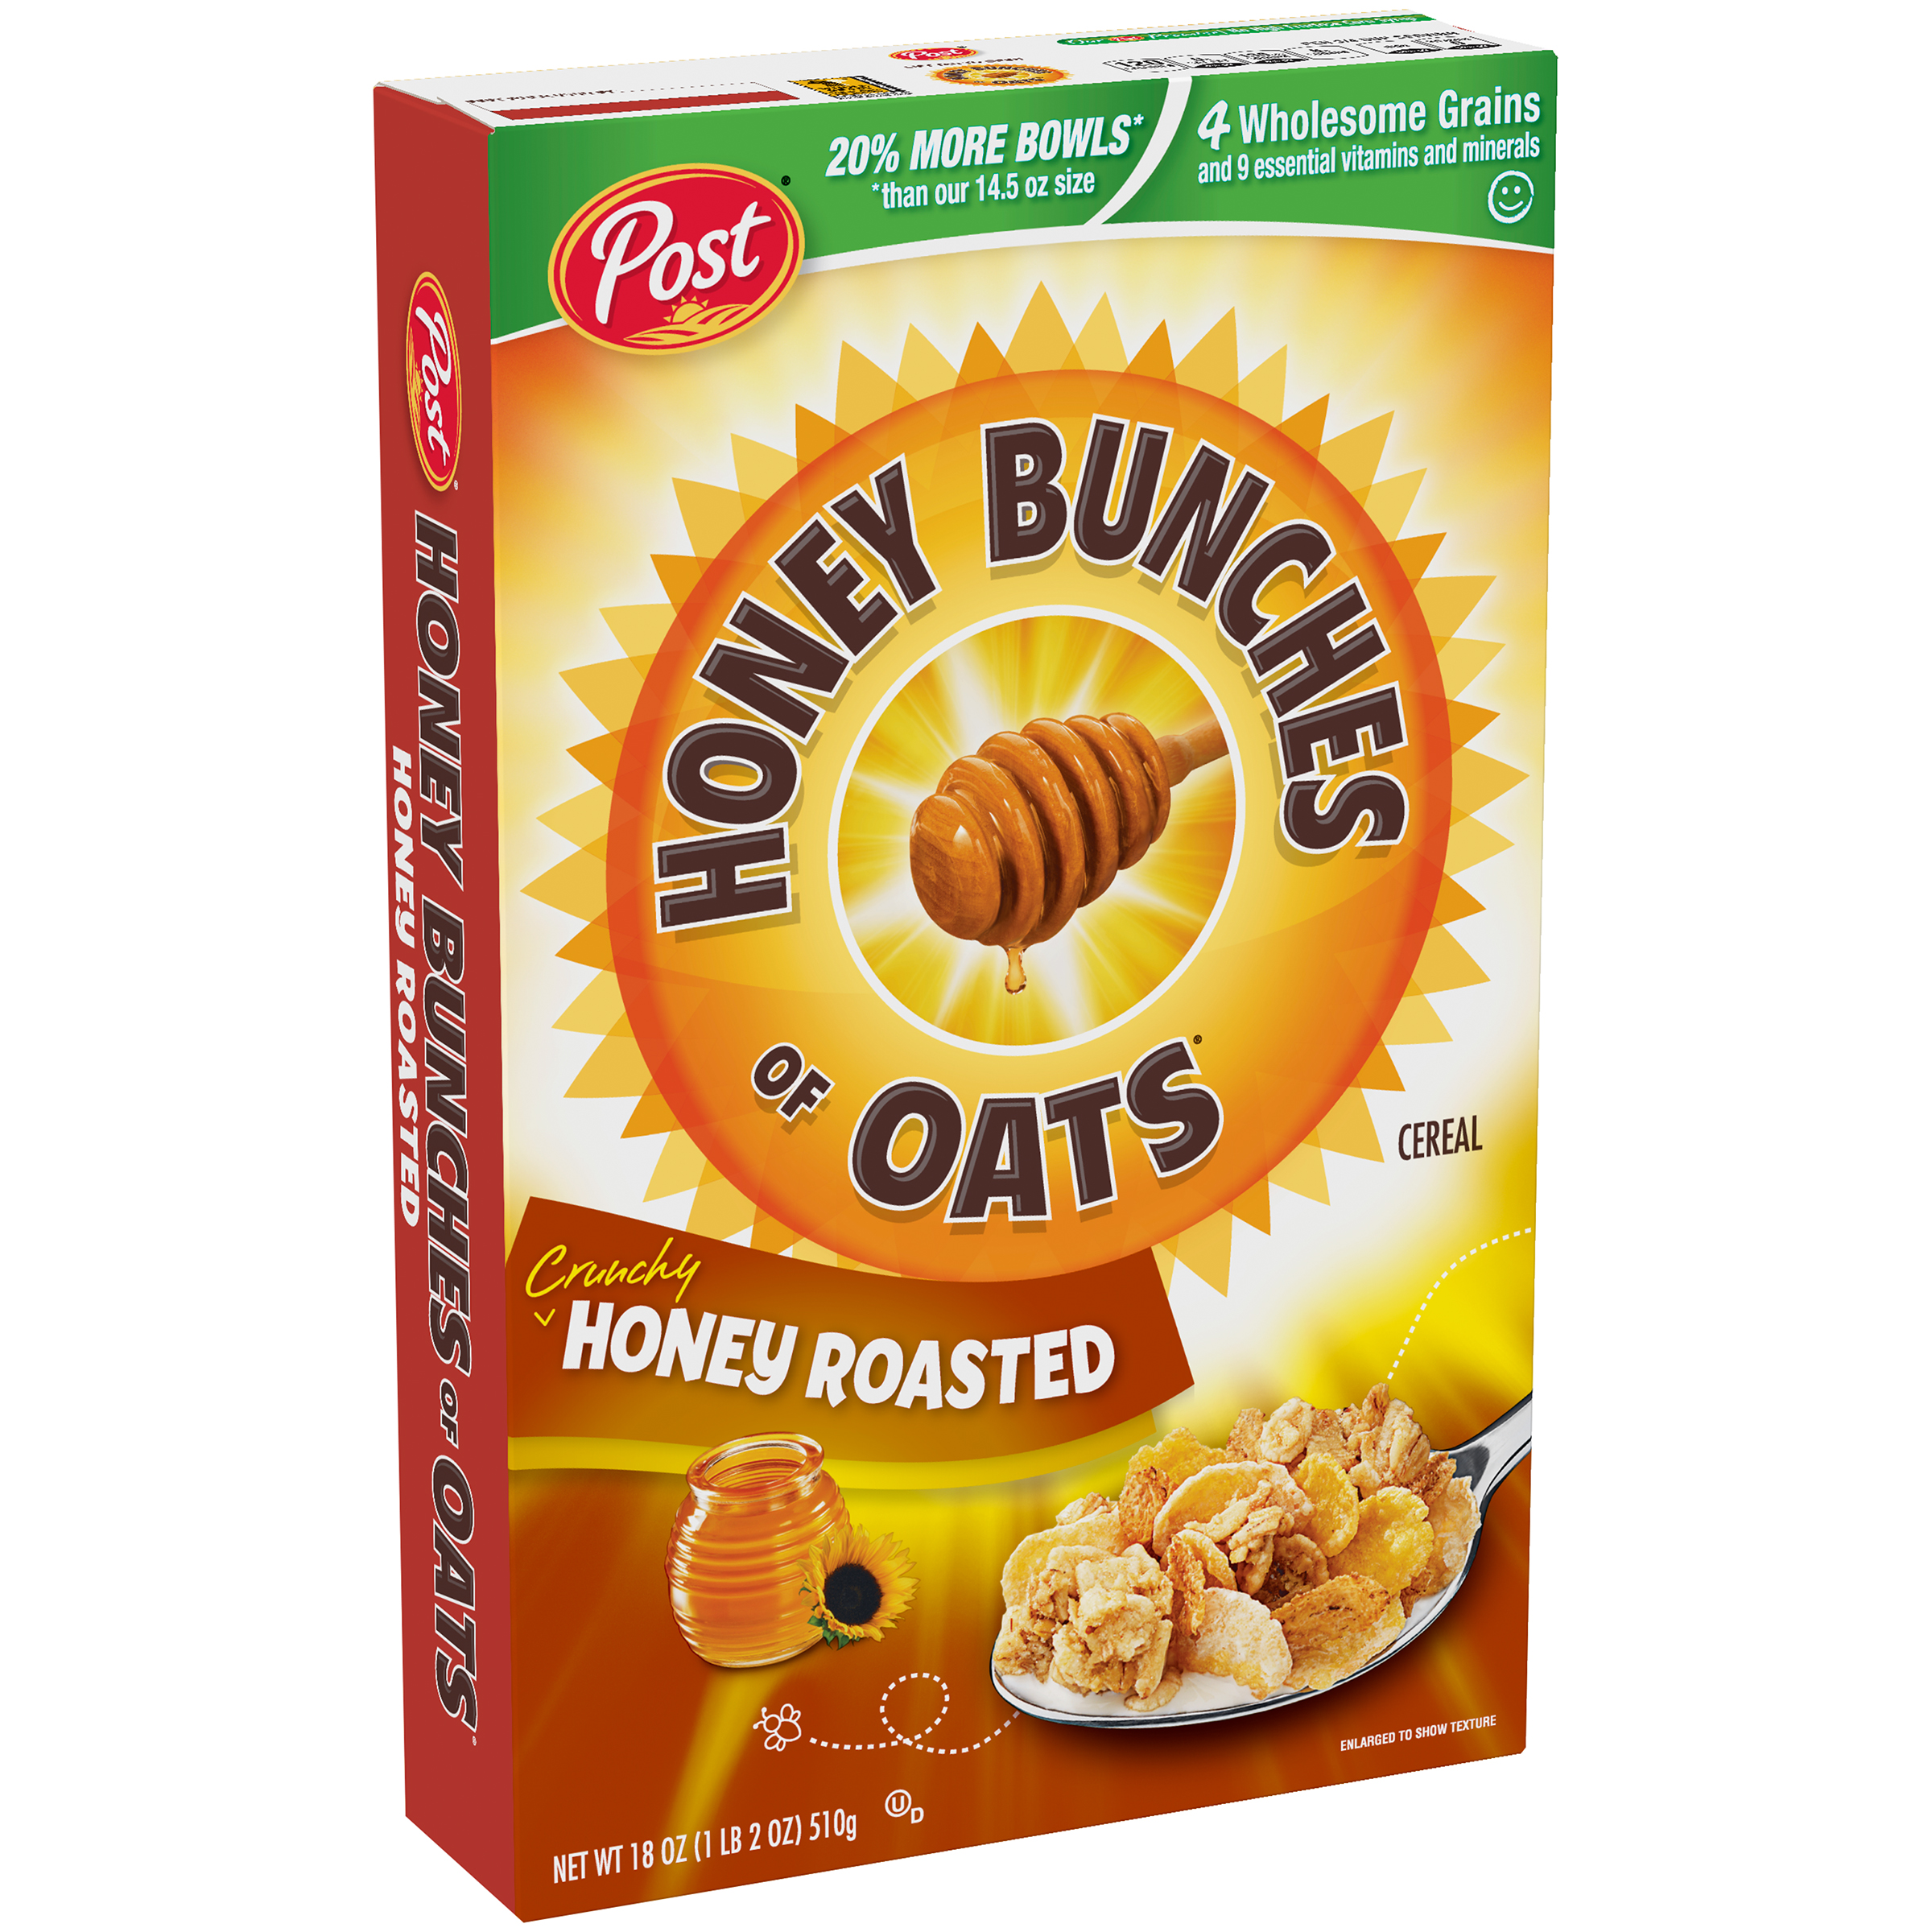 Post��� Honey Bunches of Oats�� Crunchy Honey Roasted Cereal 18 oz. Box